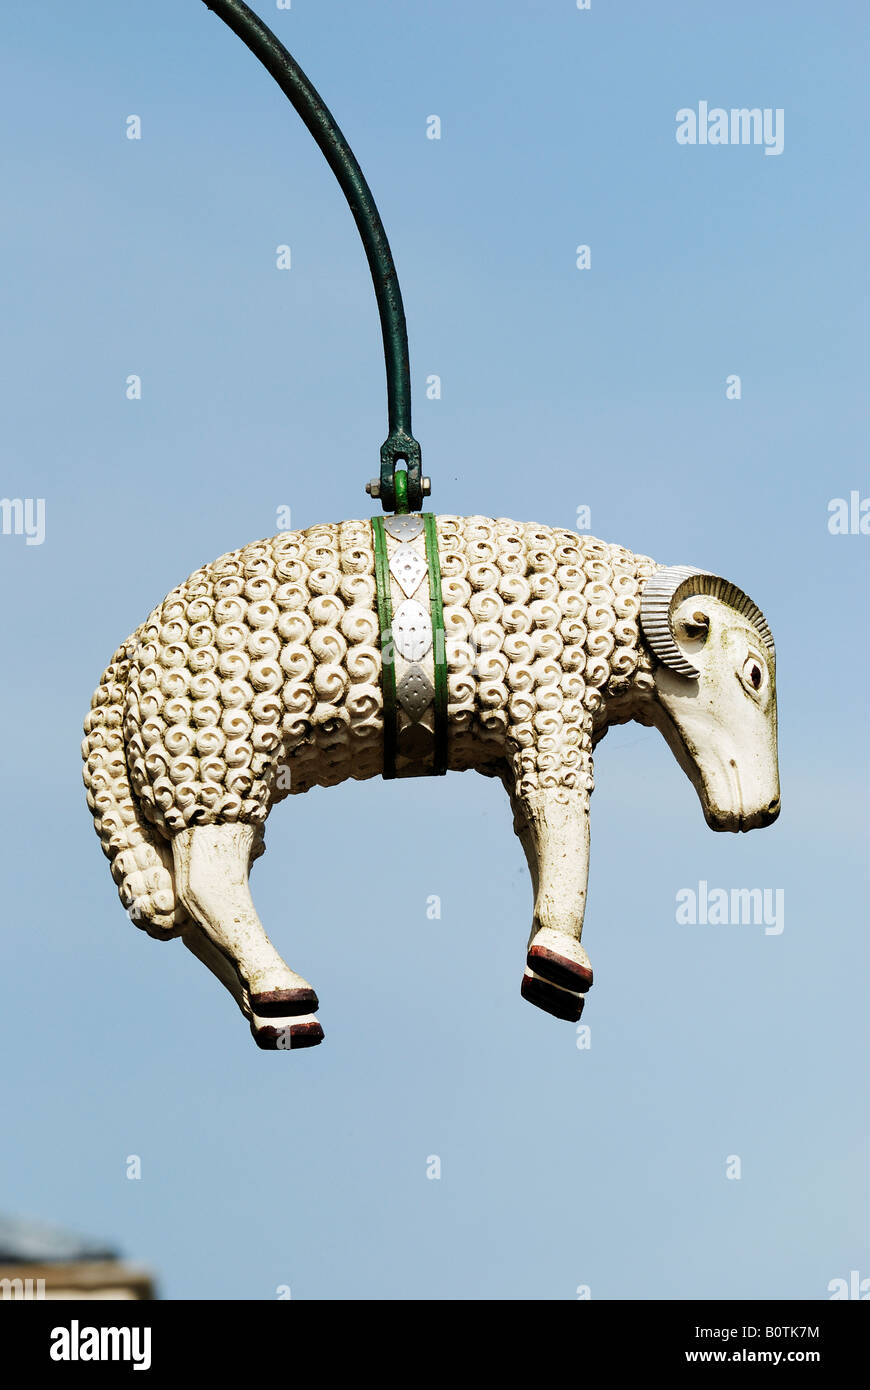 SIGN OF RAM HANGING OUTSIDE TRADITIONAL BUTCHER SHOP IN LLANIDLOES POWYS WALES - Stock Image